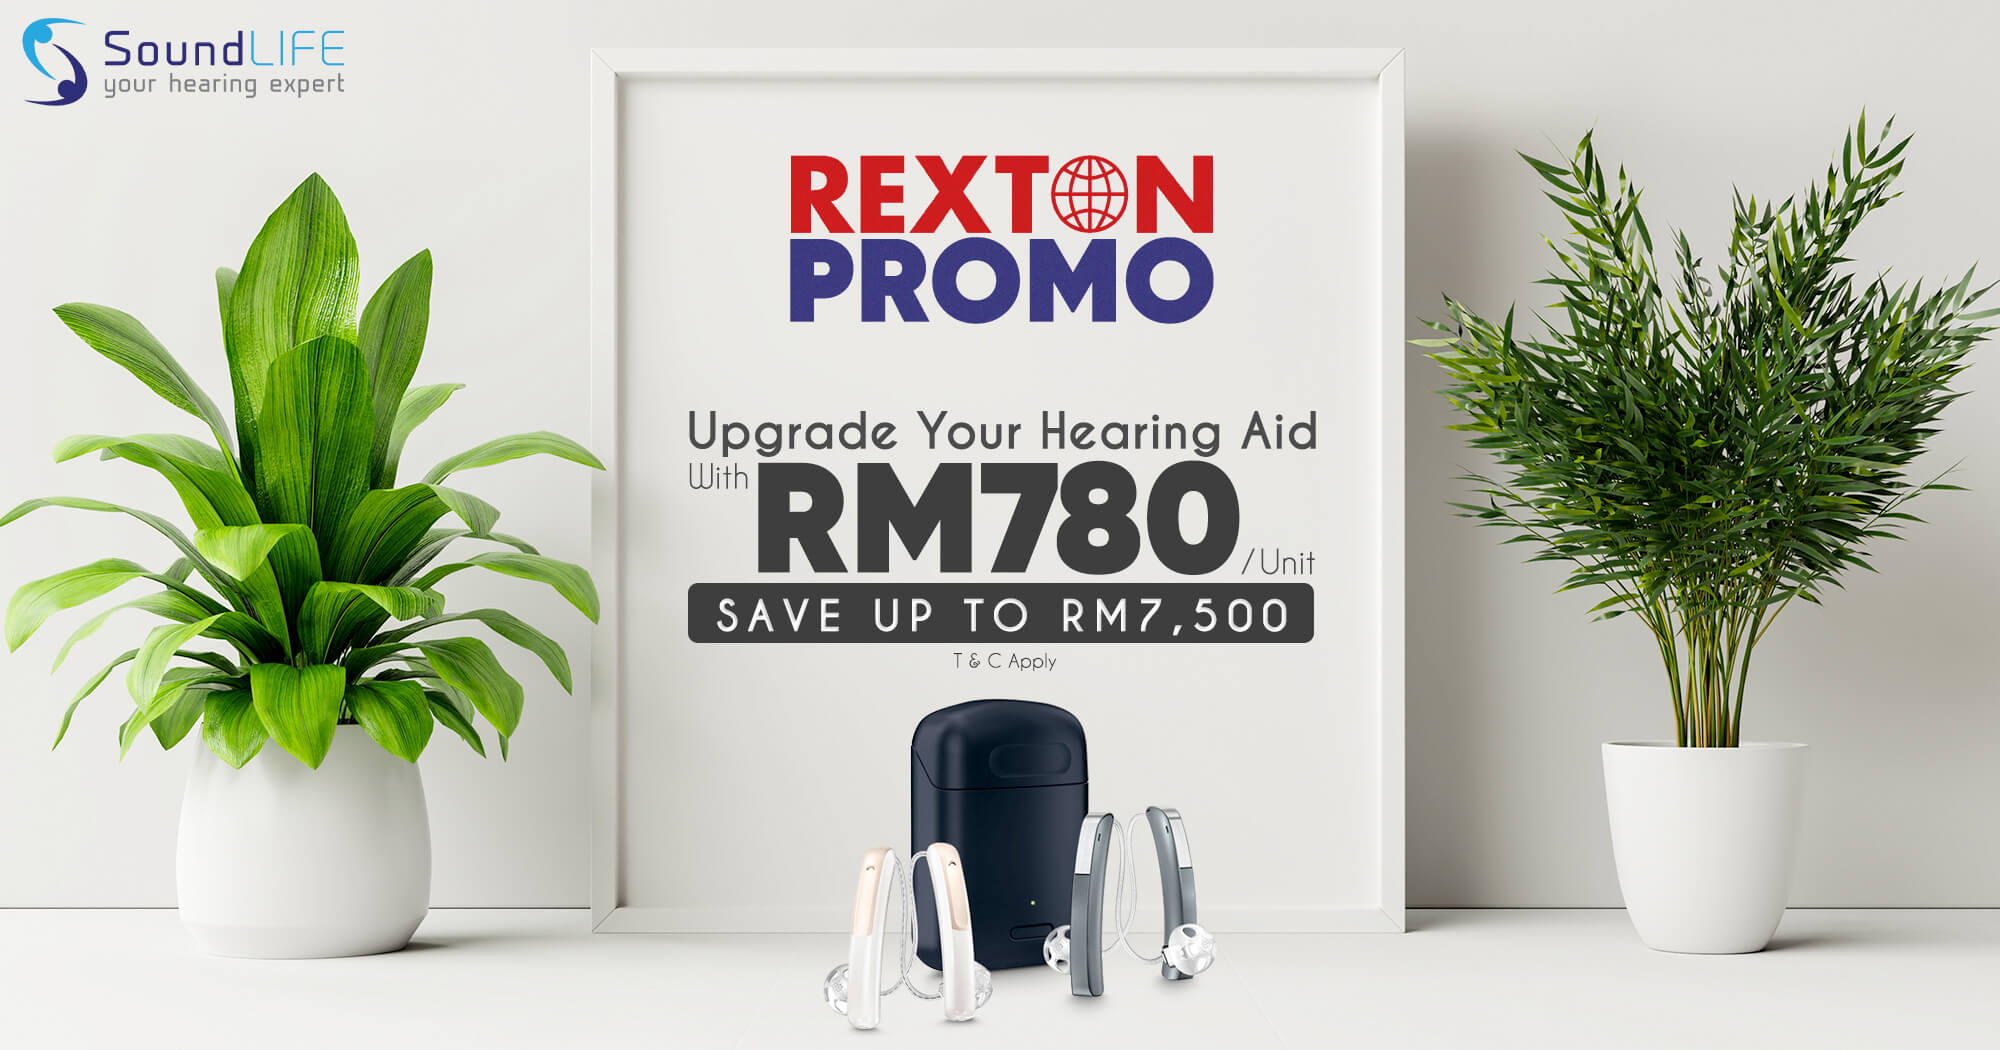 Soundlife Rexton Promo Upgrade Your Hearing Aid 01